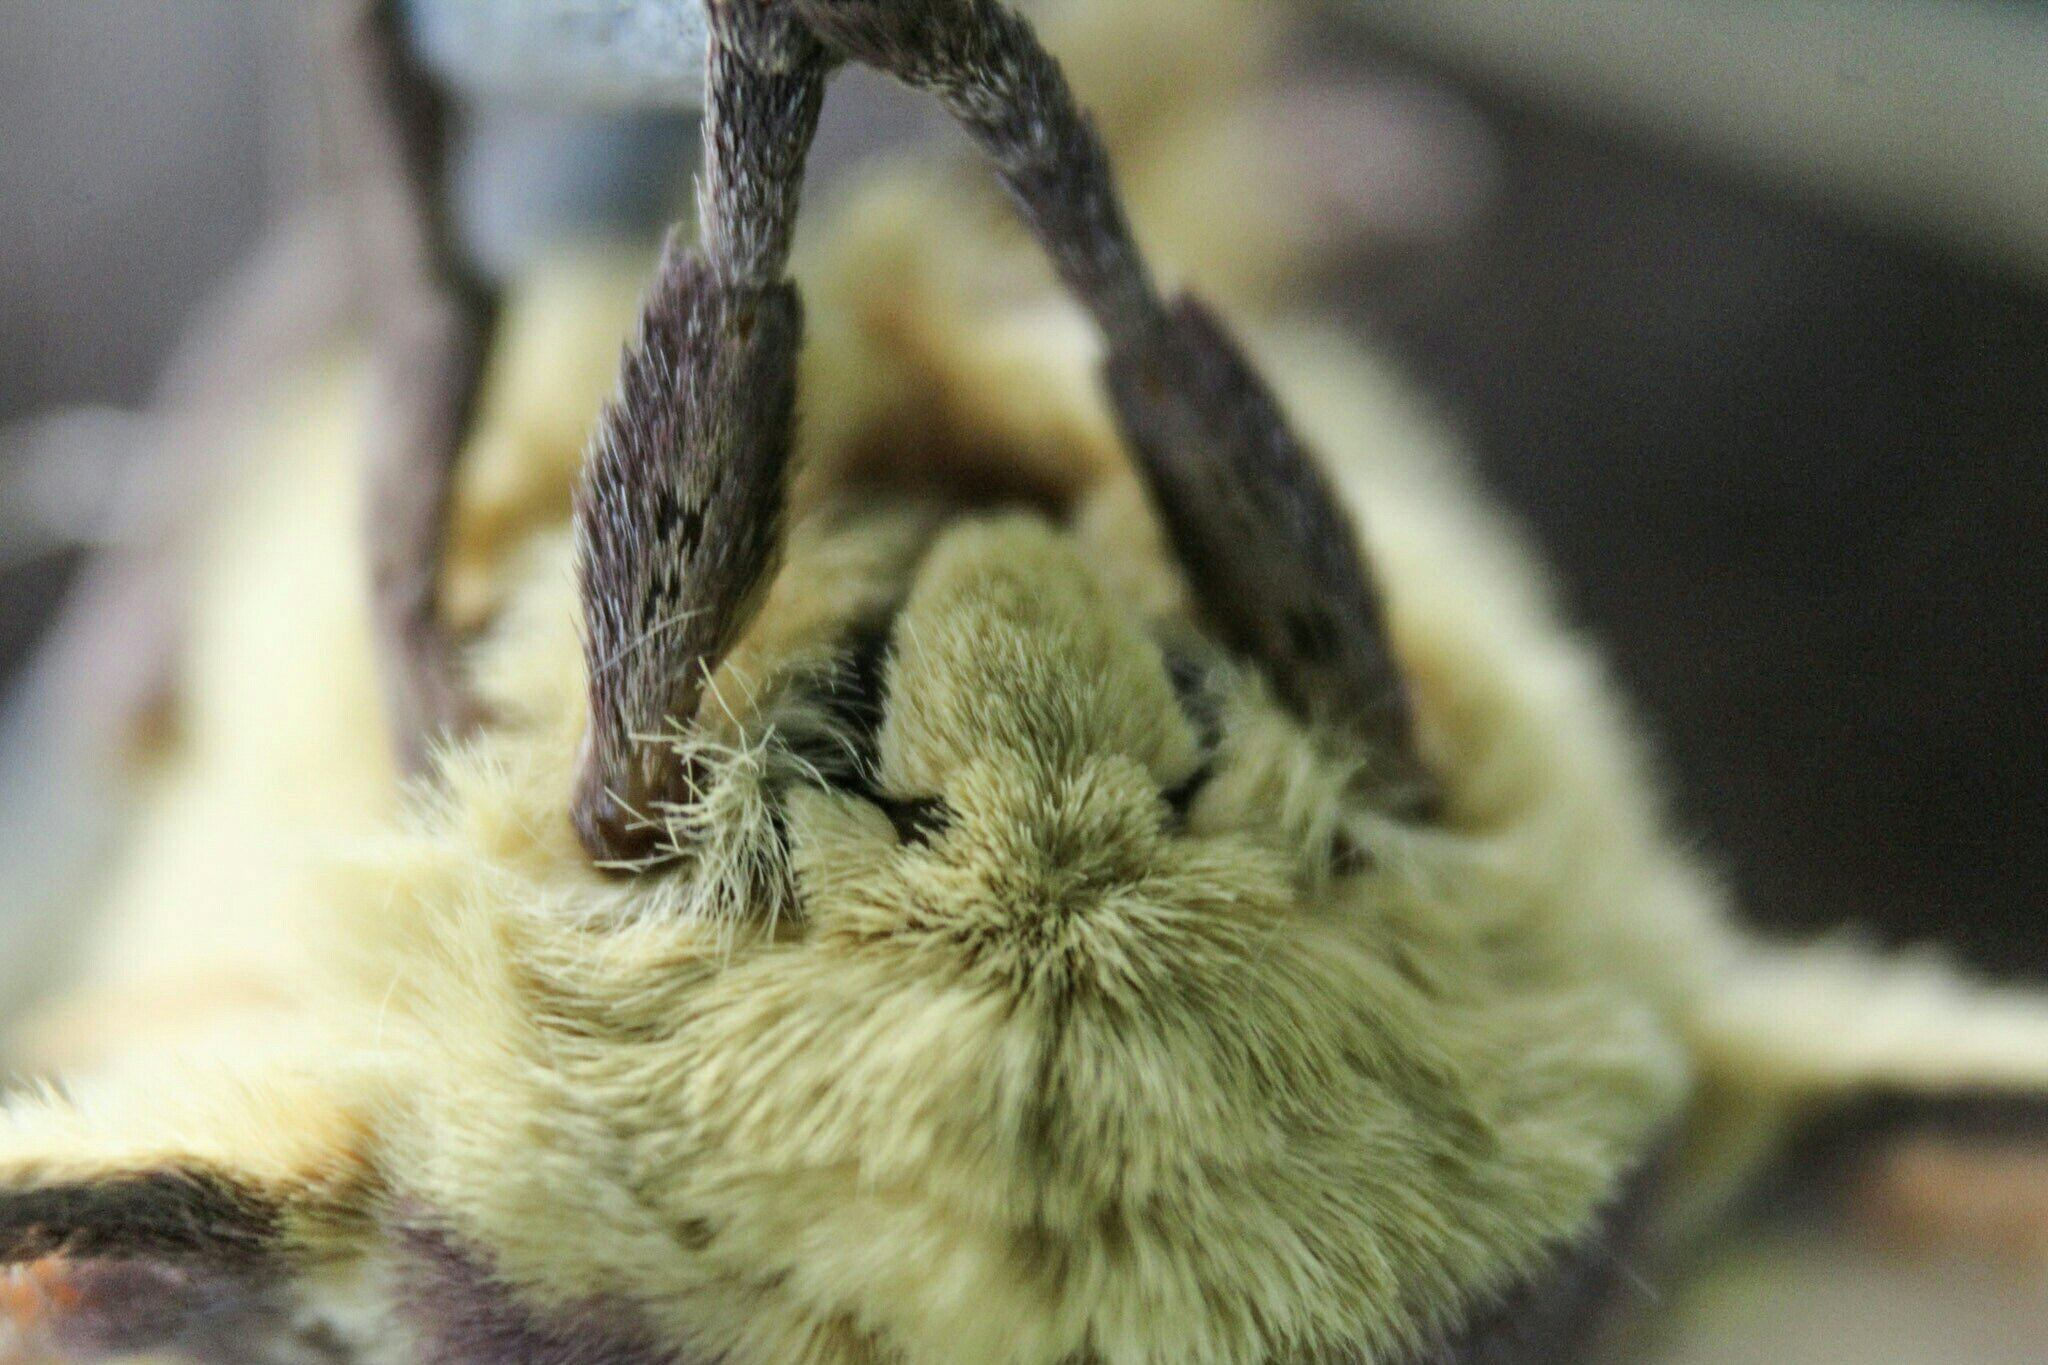 Imperial Moth Face